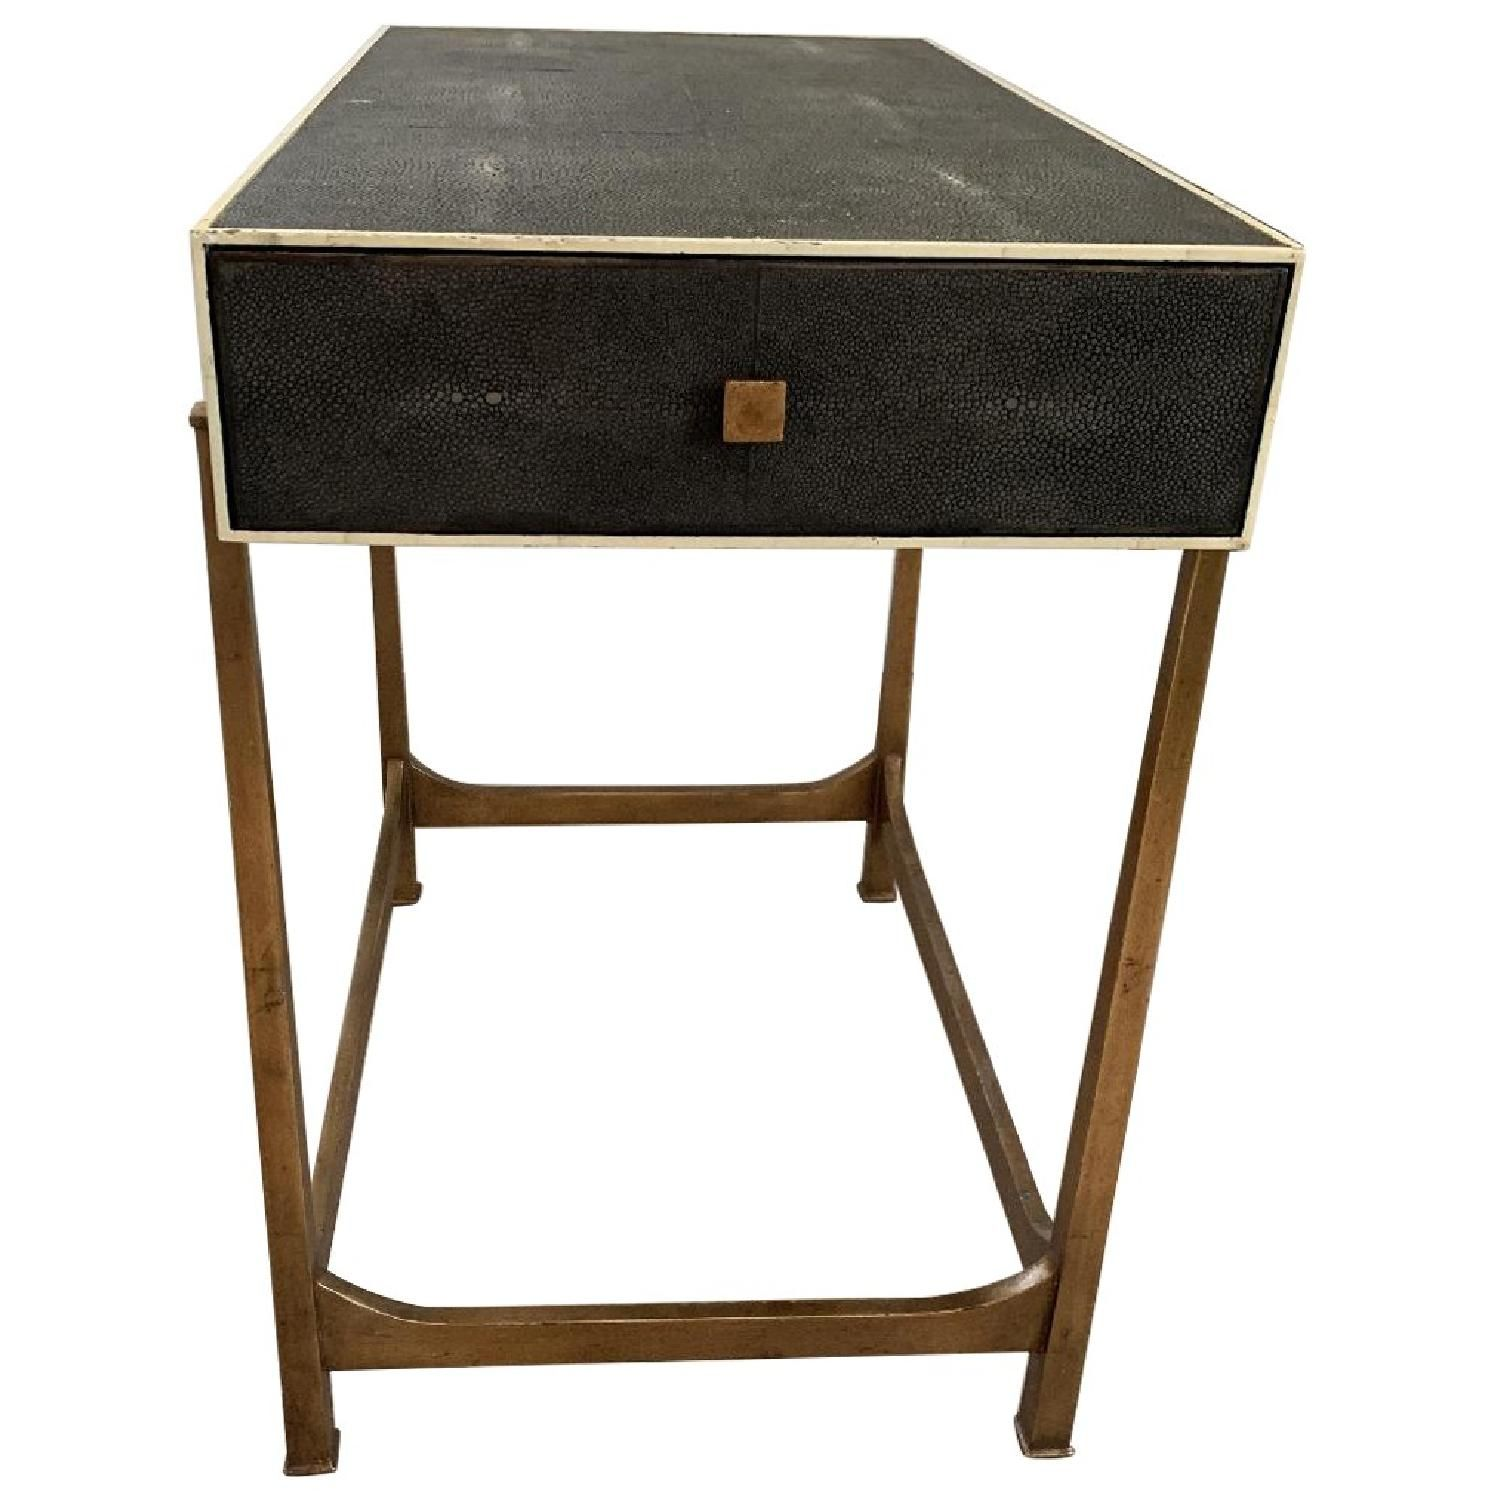 Safavieh Cleo Faux Shagreen End Tables Selling Furniture End Tables Shagreen